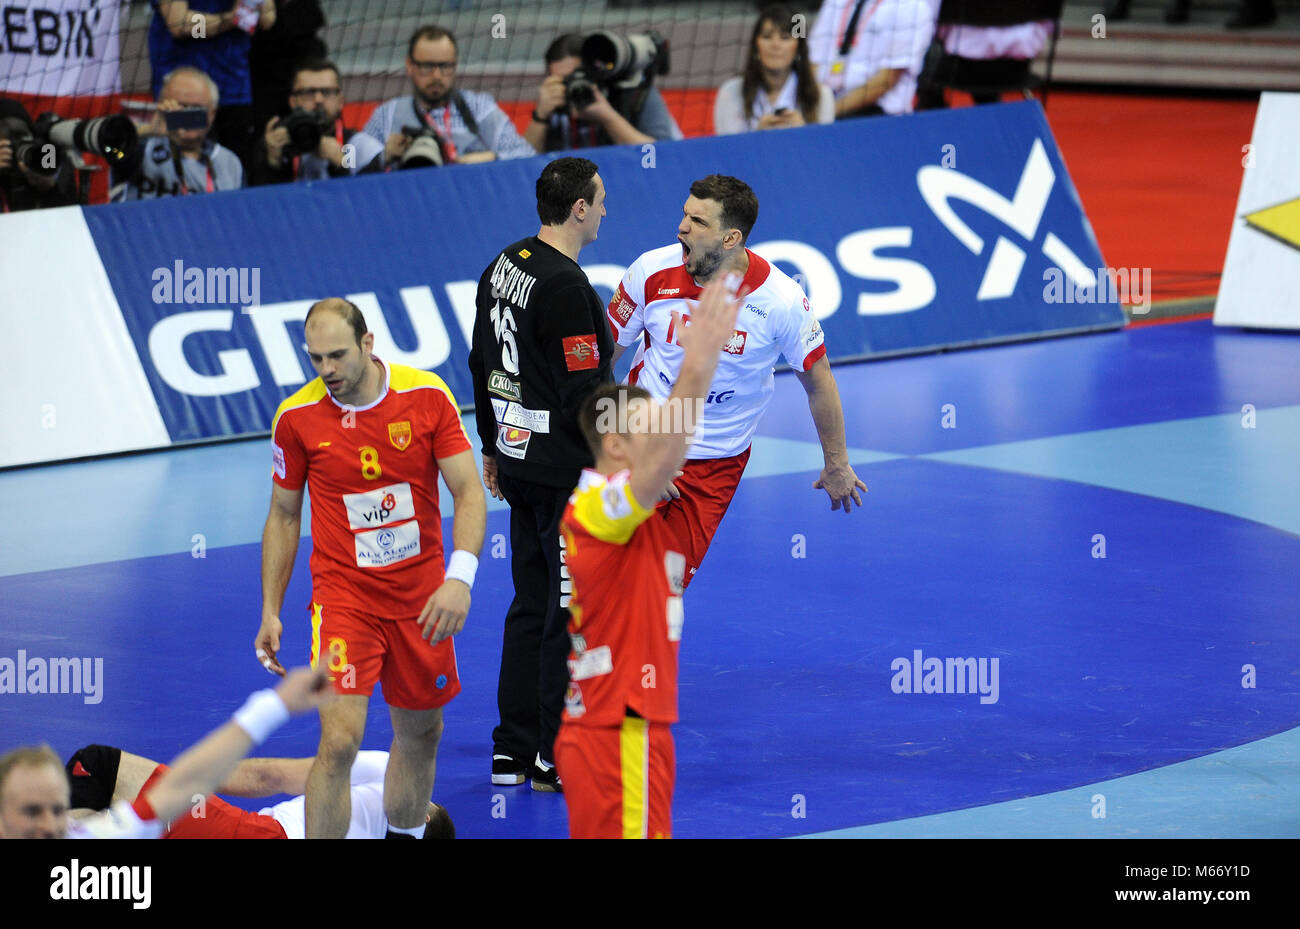 CRACOV, POLAND - JANUARY 17, 2016: Men's EHF European Handball Federation EURO 2016 Krakow Tauron Arena Poland - Stock Image